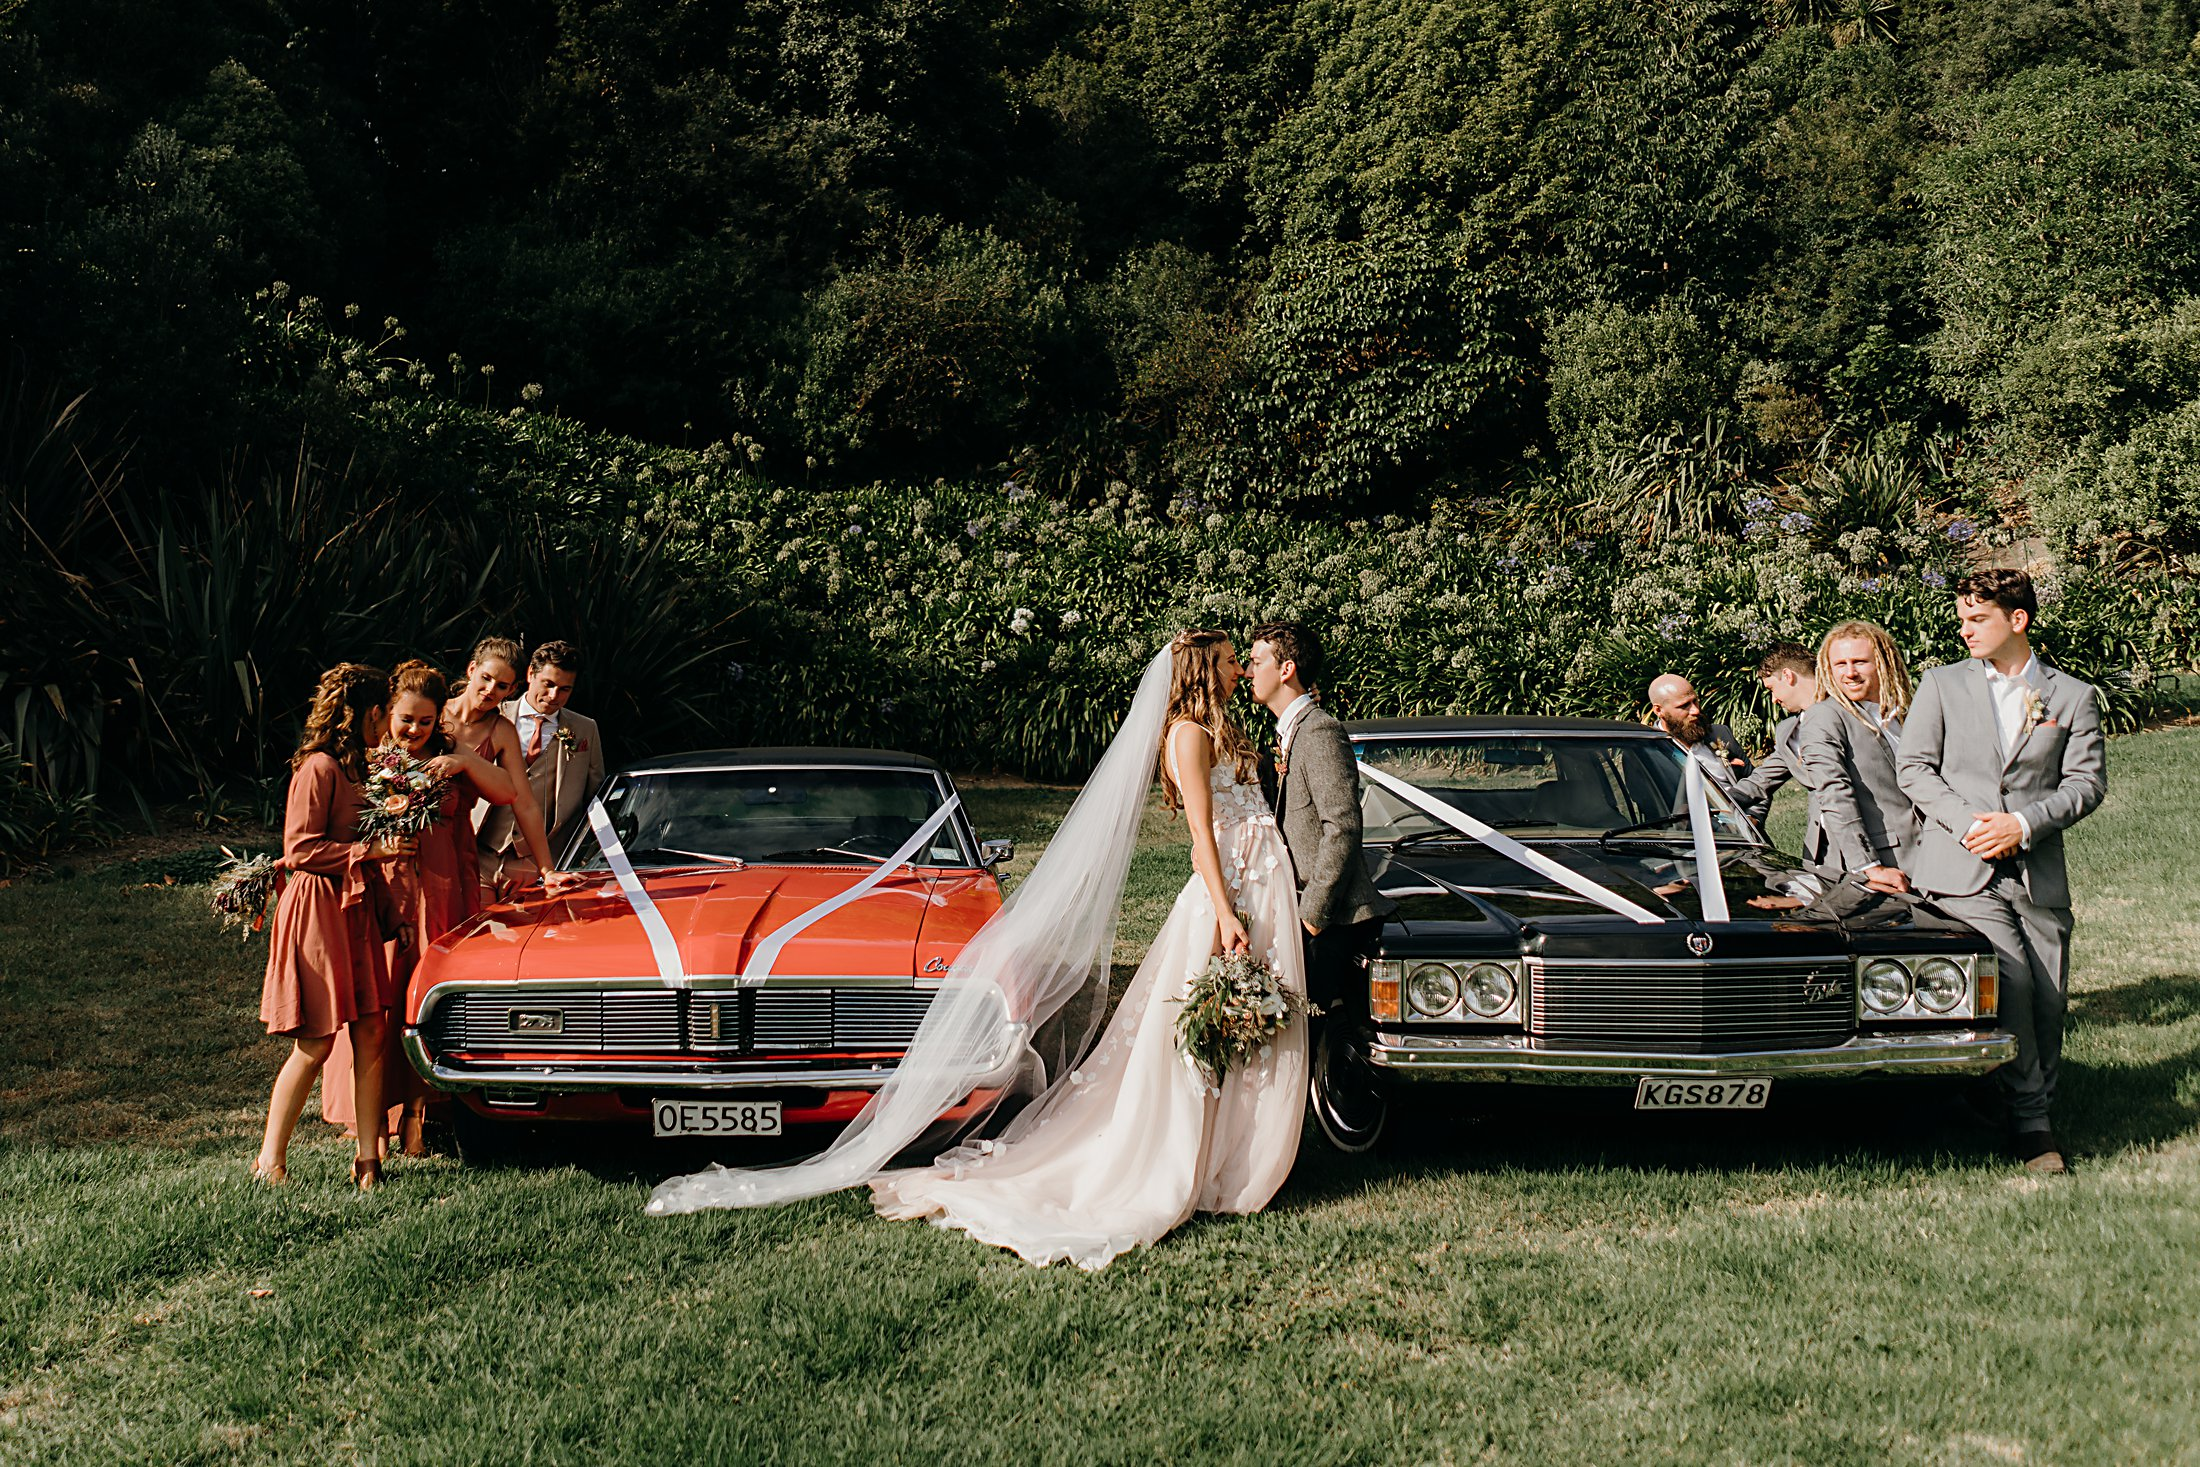 Wedding Party and car photos